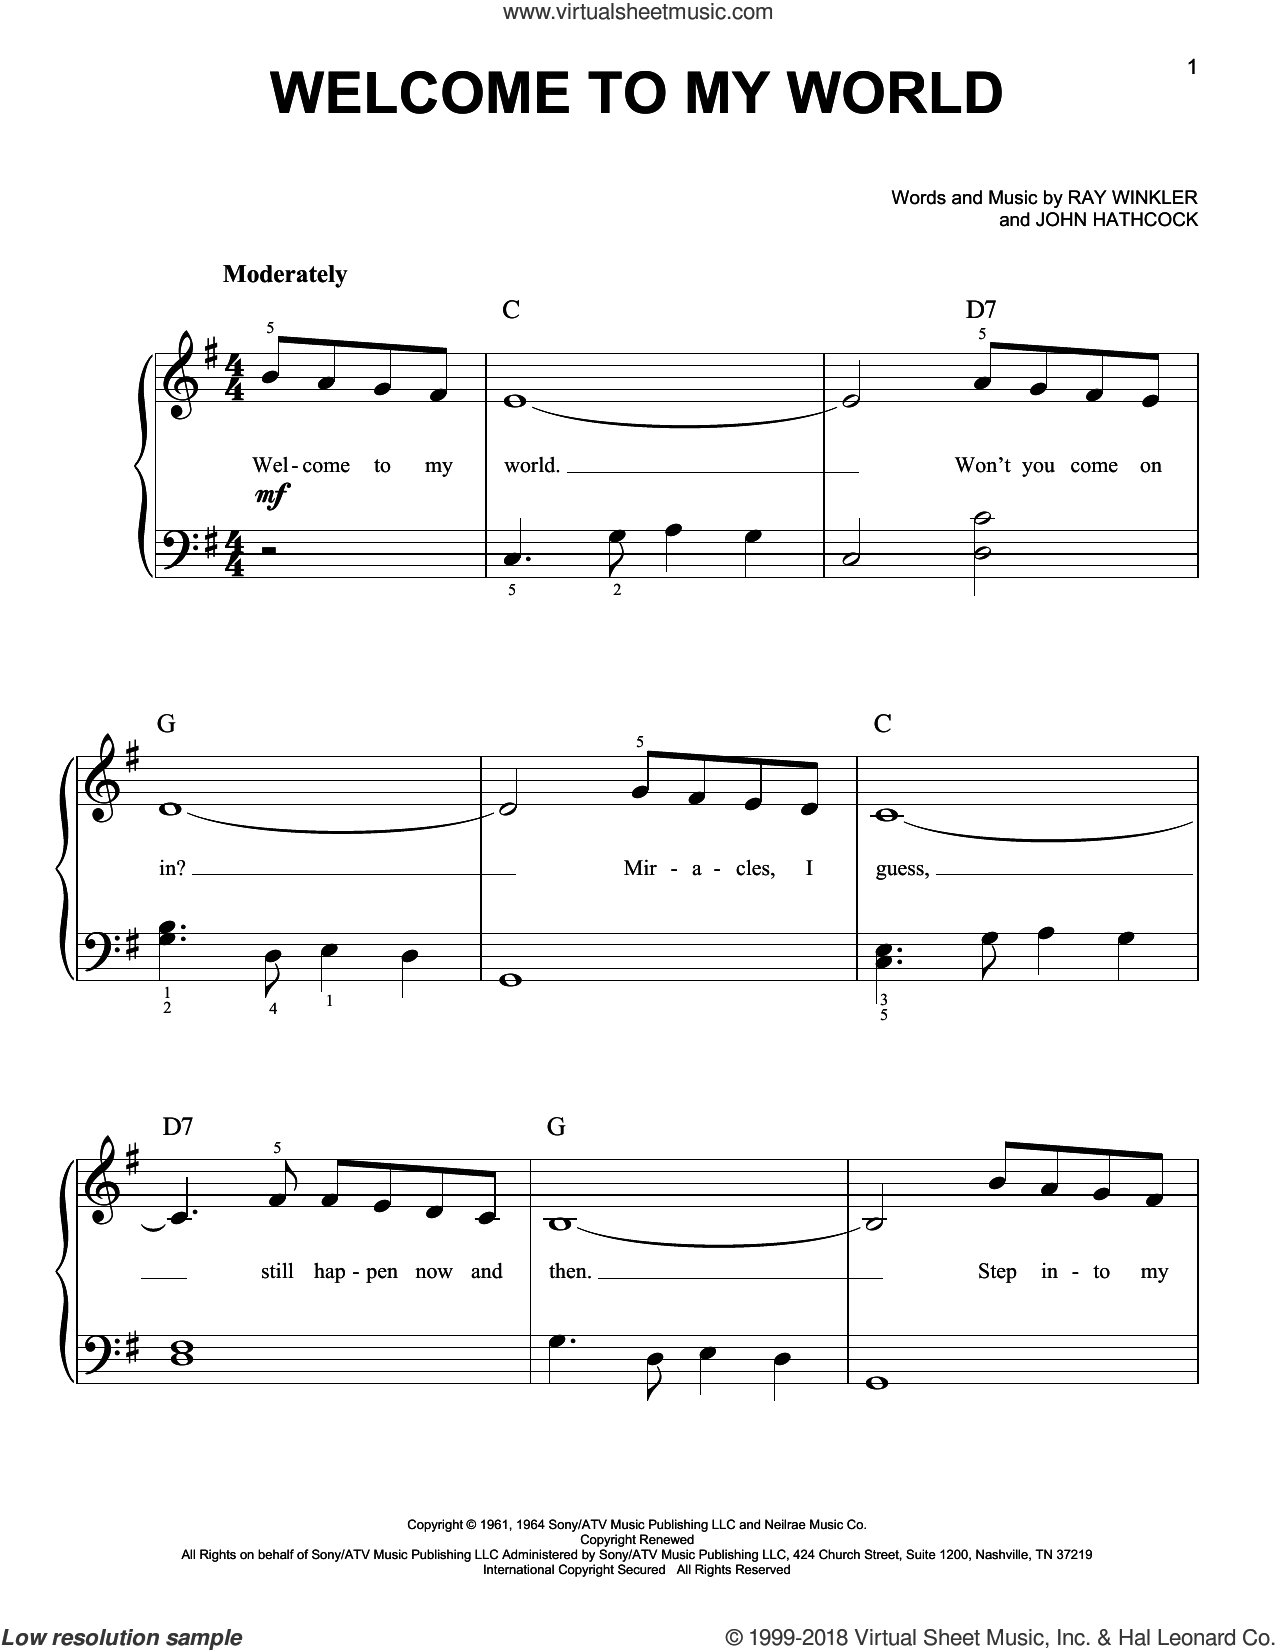 Welcome To My World sheet music for piano solo by Ray Winkler